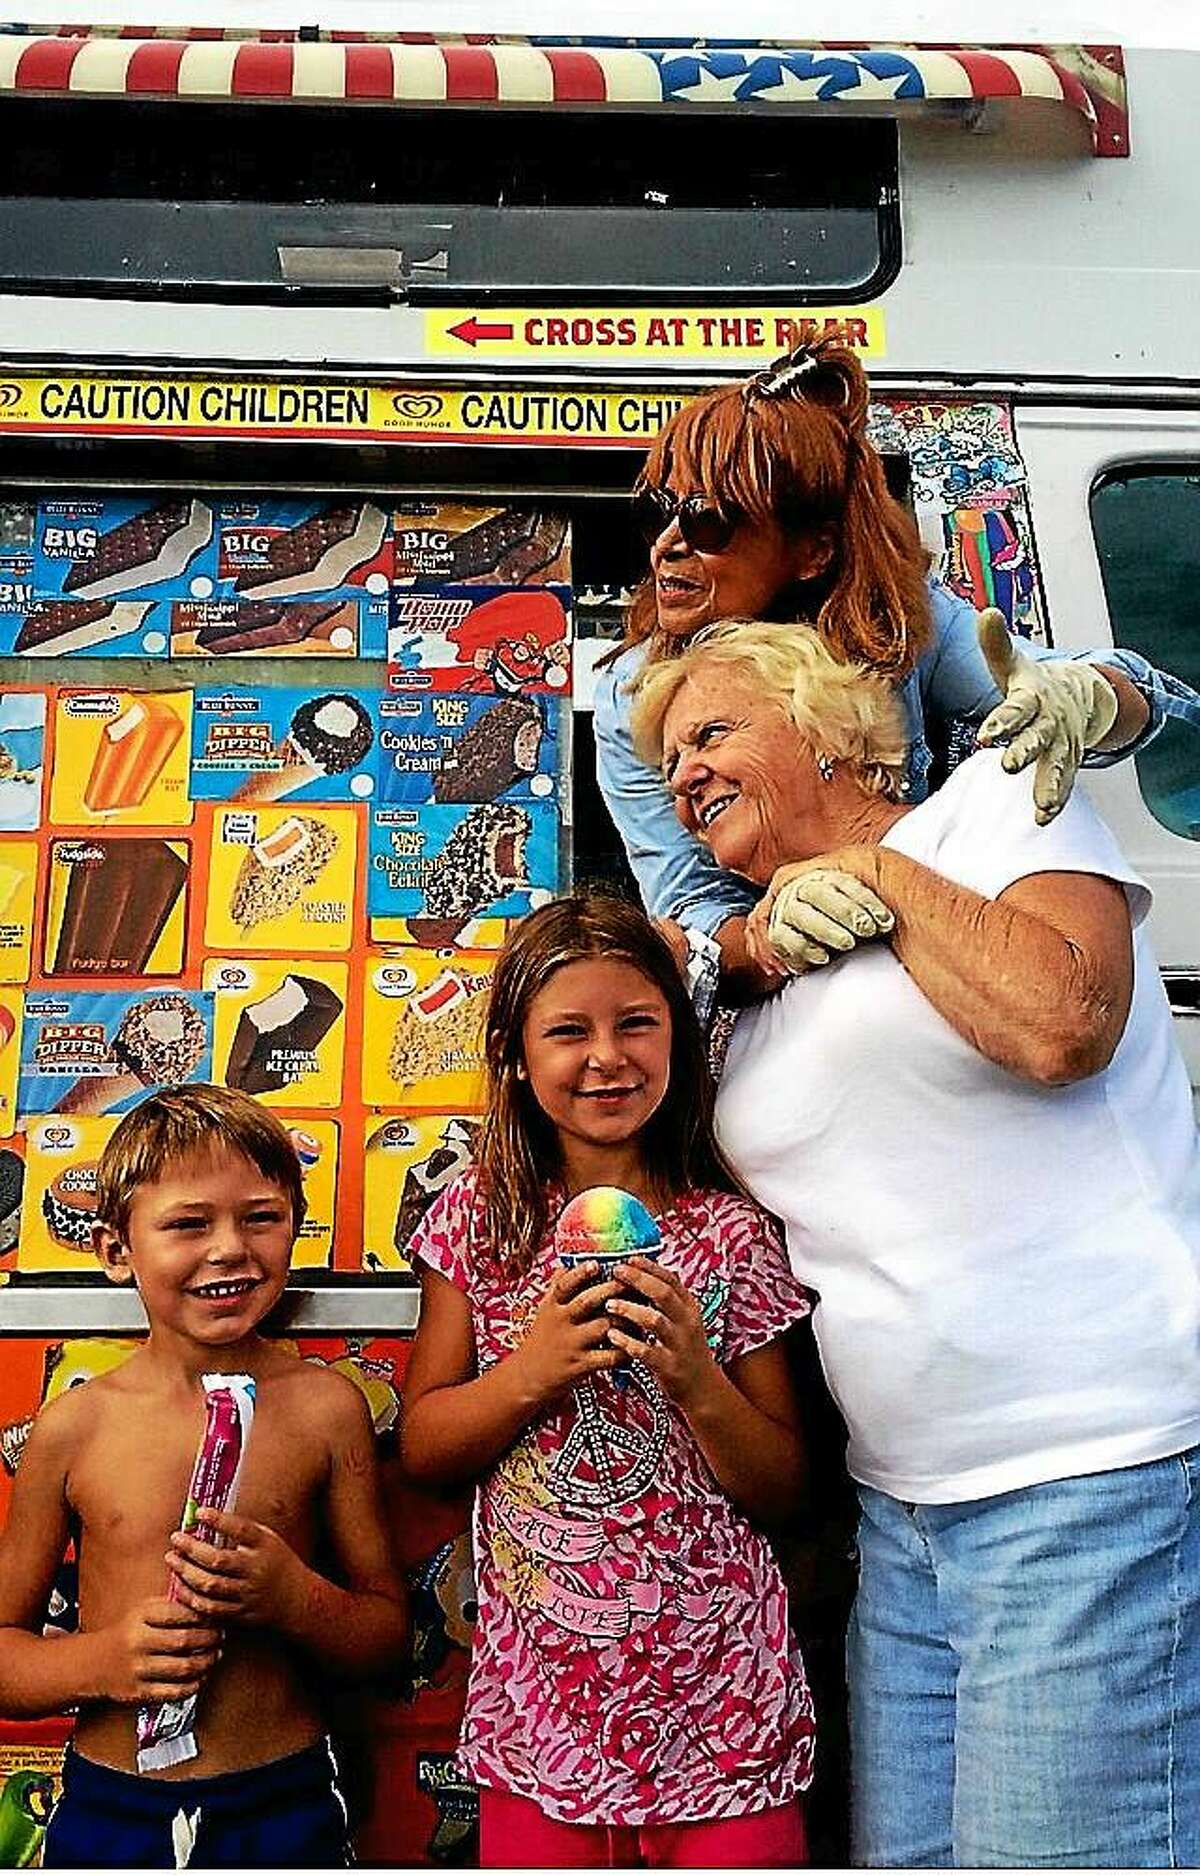 Daisy Gonzalez hugs the matriarch of the Honeyman family, while two younger cousins smile and prepare to eat the frozen treats.